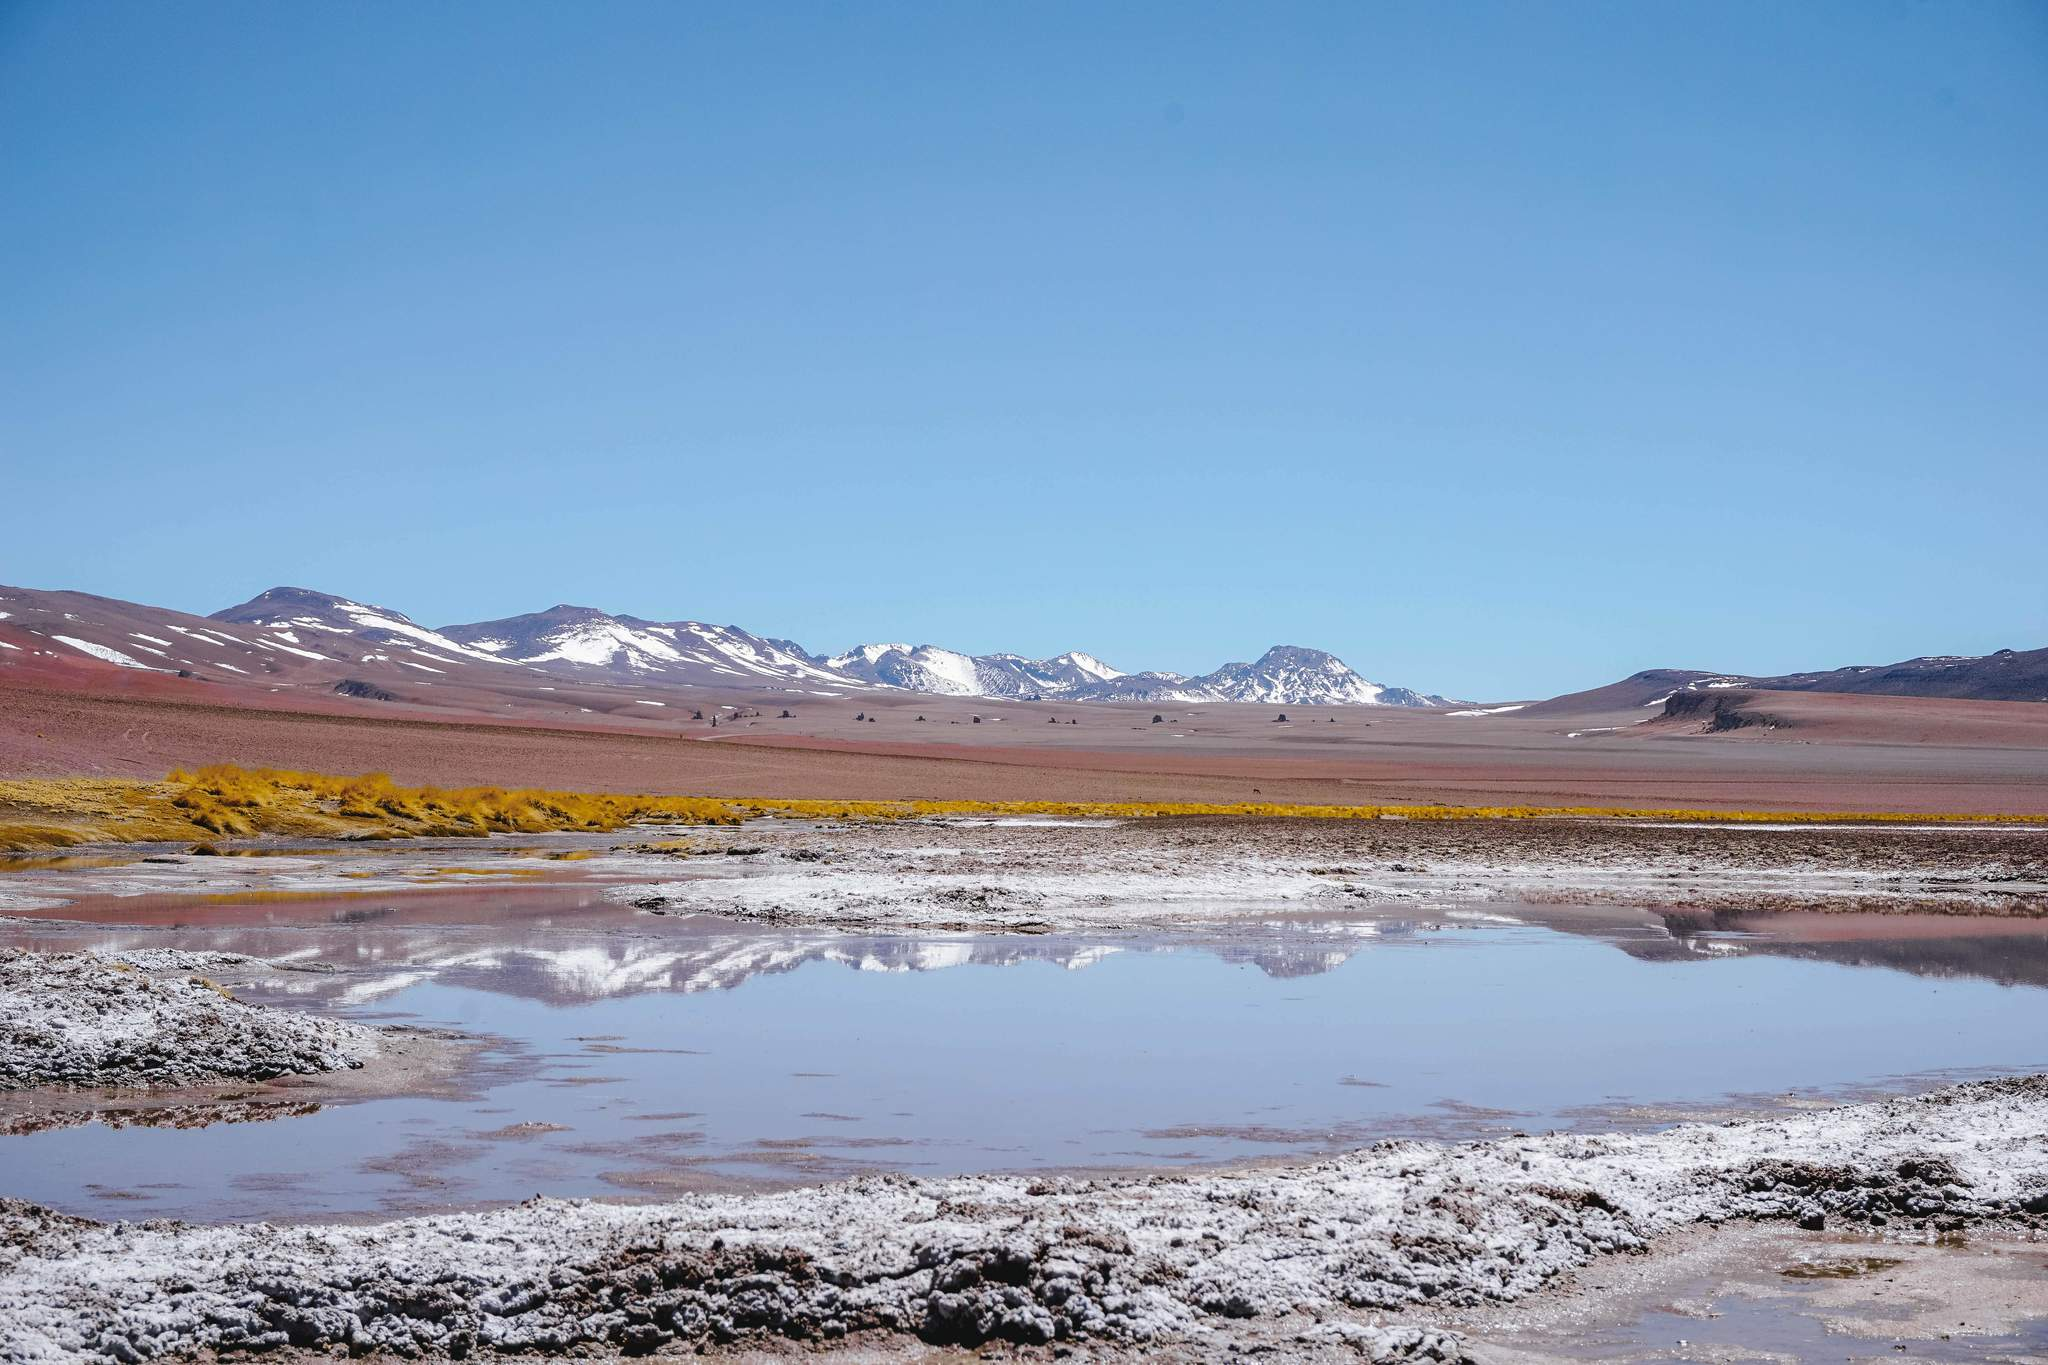 Self-driving guide-to-Atacama-Desert-itinerary-must-see-spots